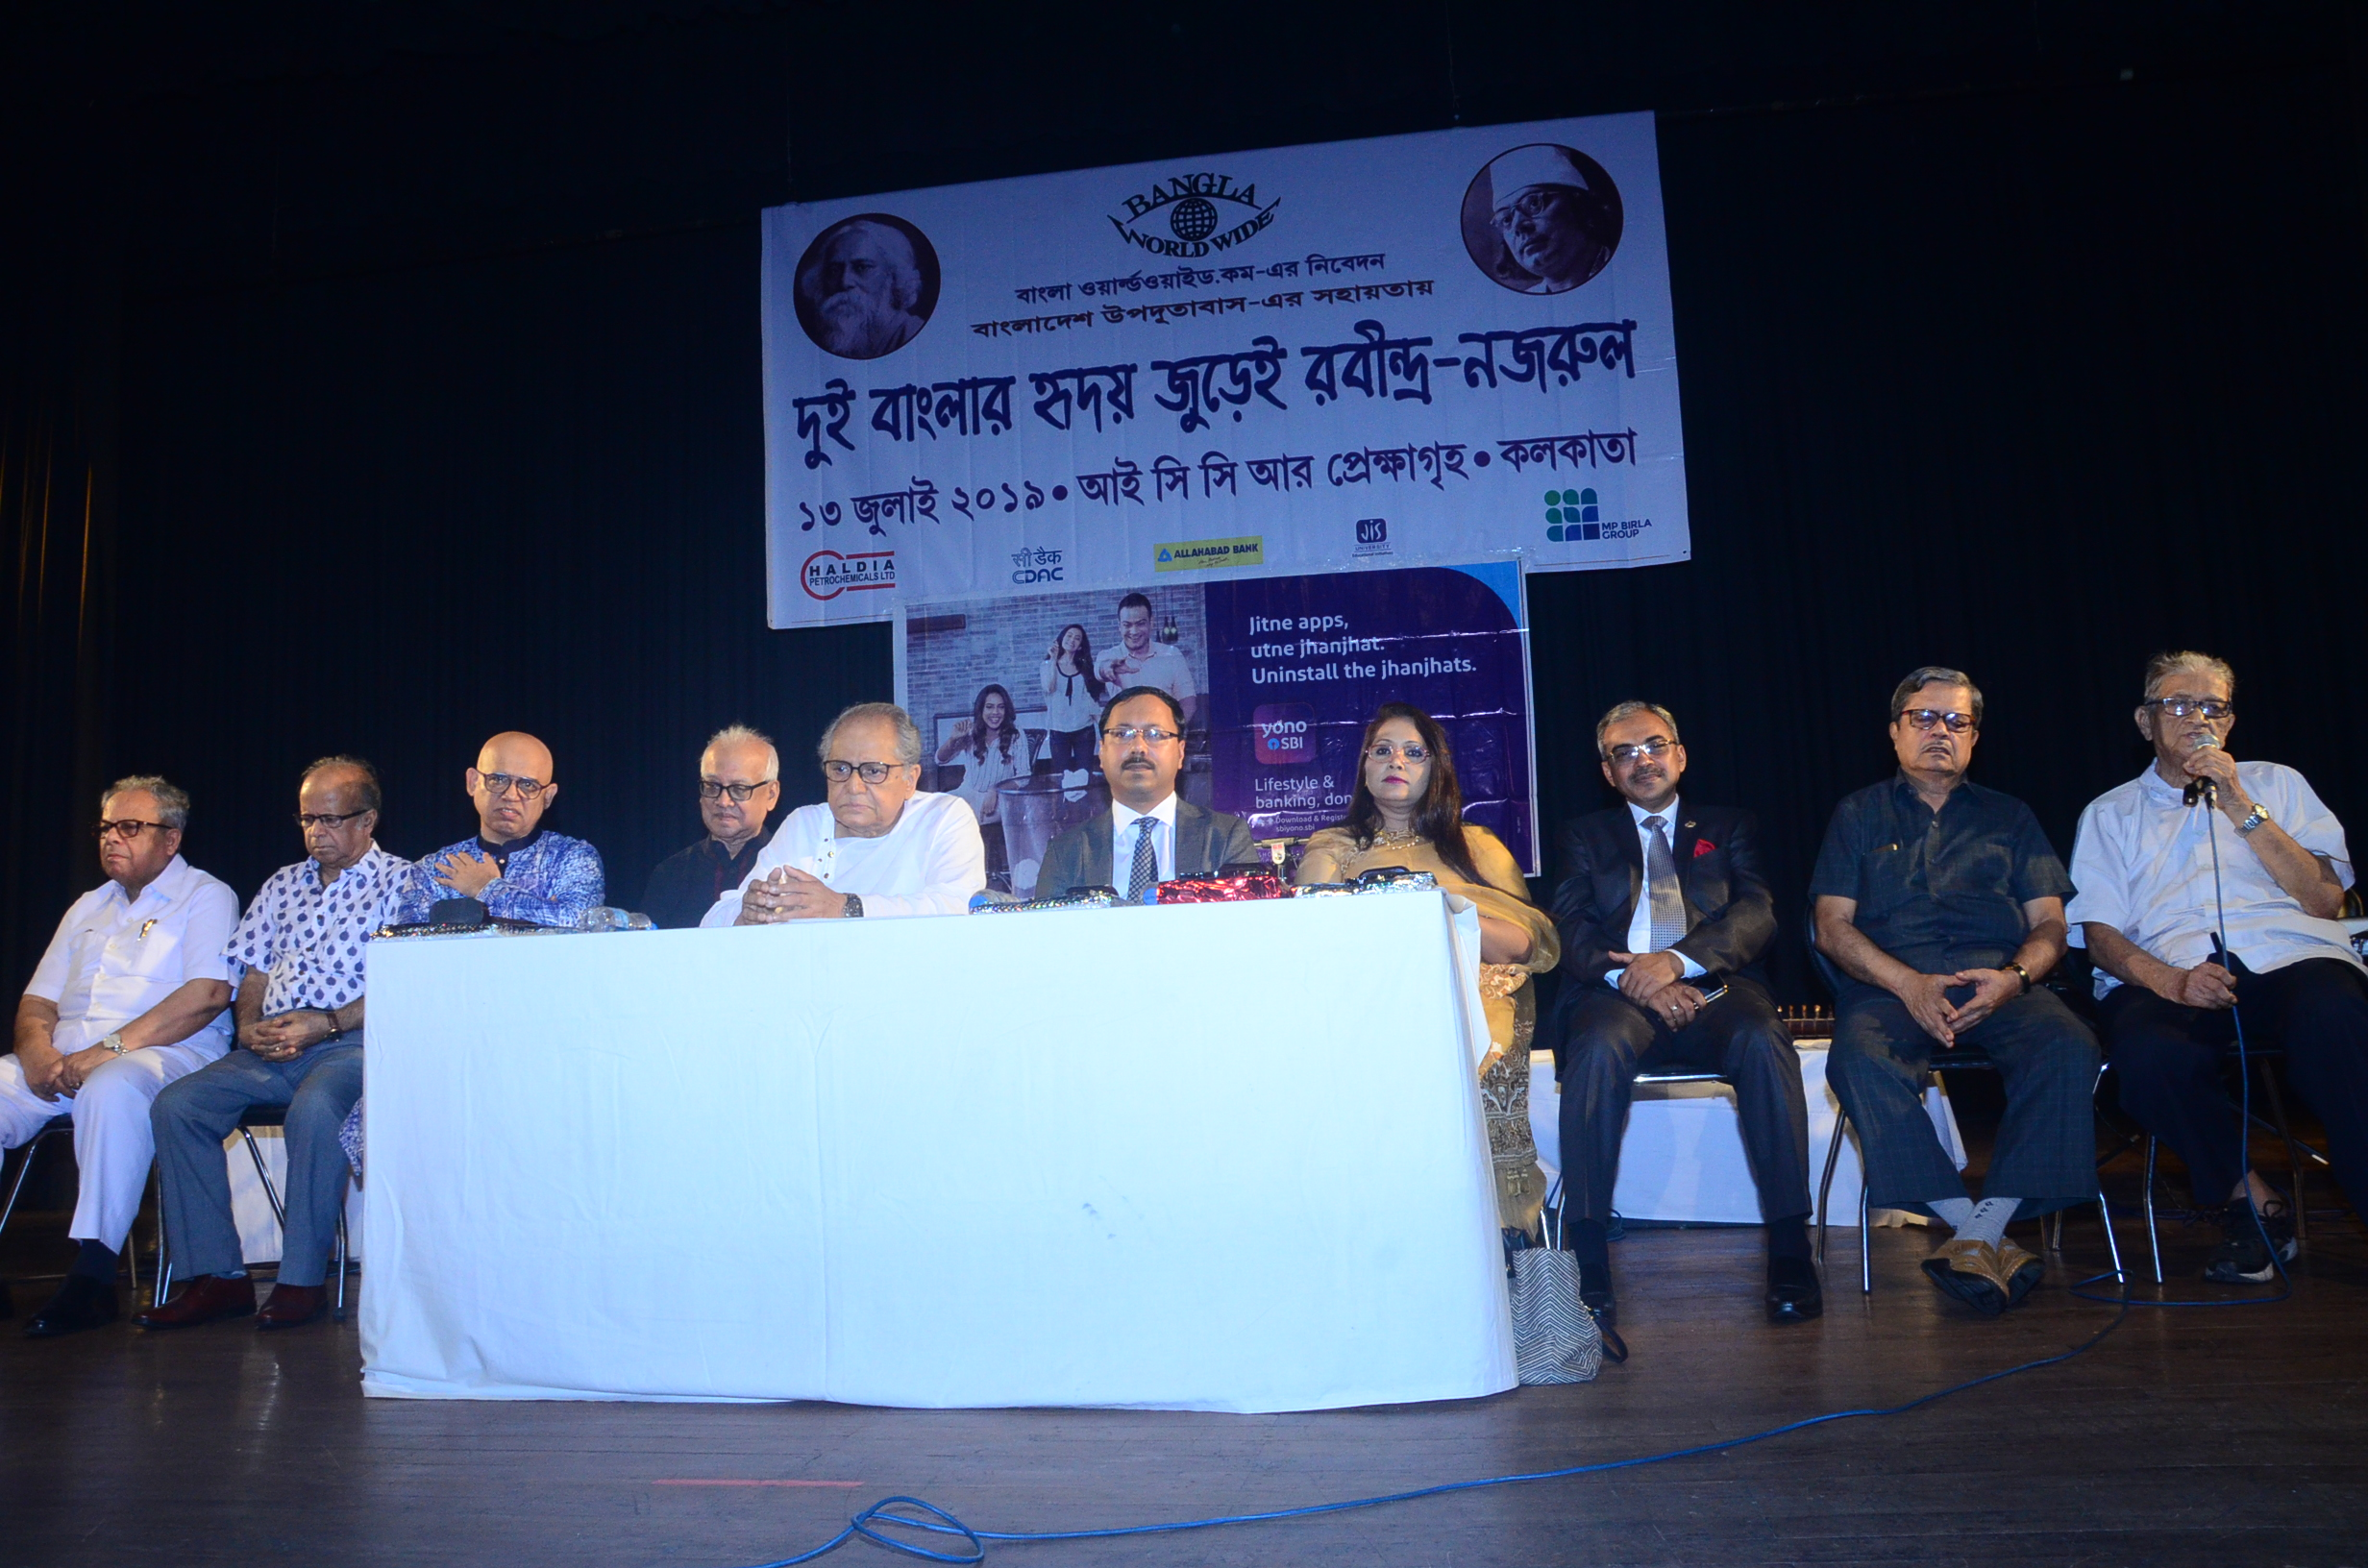 A soiree to spread Bengali culture and literature